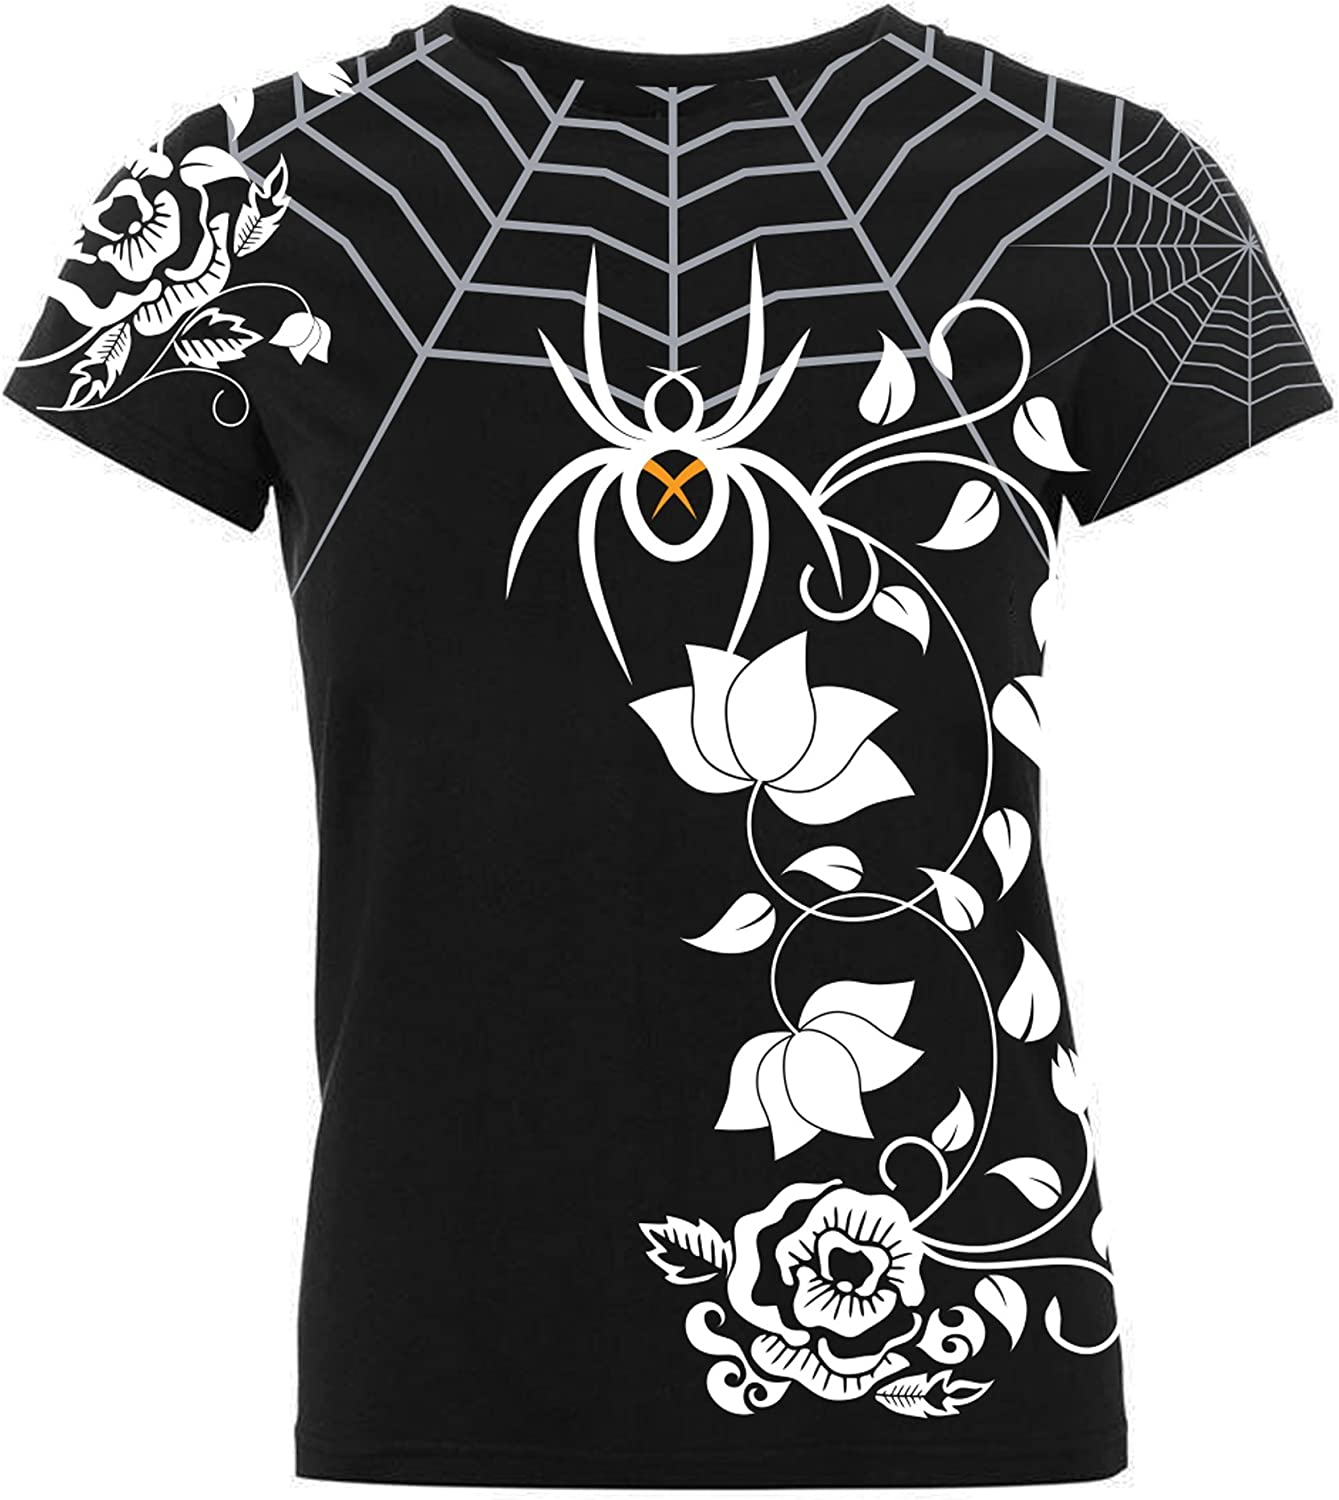 BLACK WIDOW COMBAT SPORTS Women's Spider Web Rash Guard